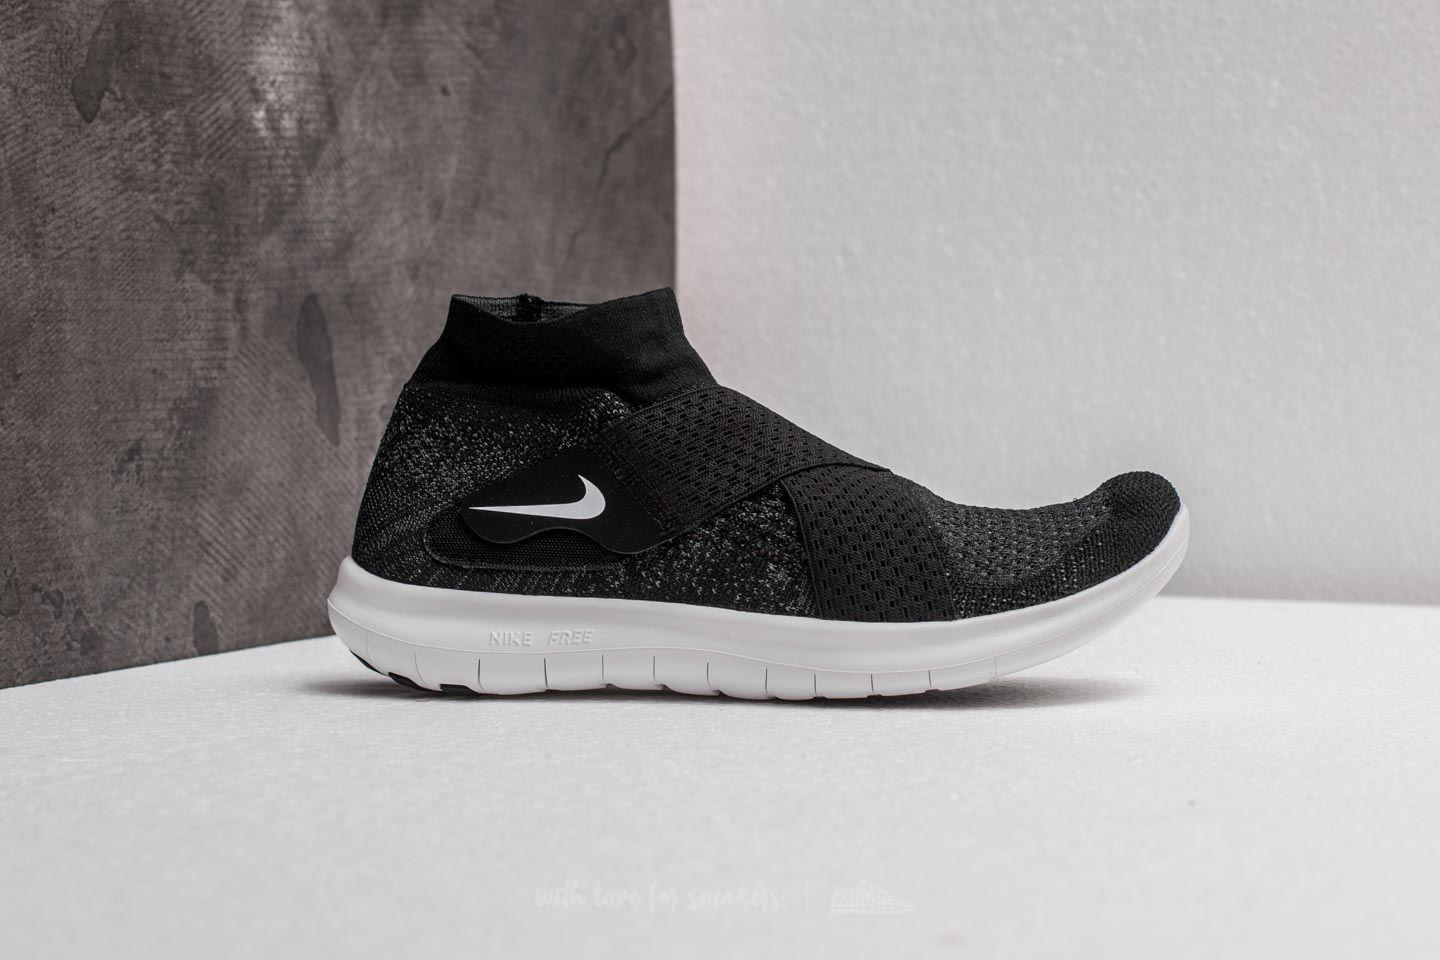 f31a51e45e Gallery. Previously sold at: Footshop · Men's Nike Flyknit Men's Nike Free